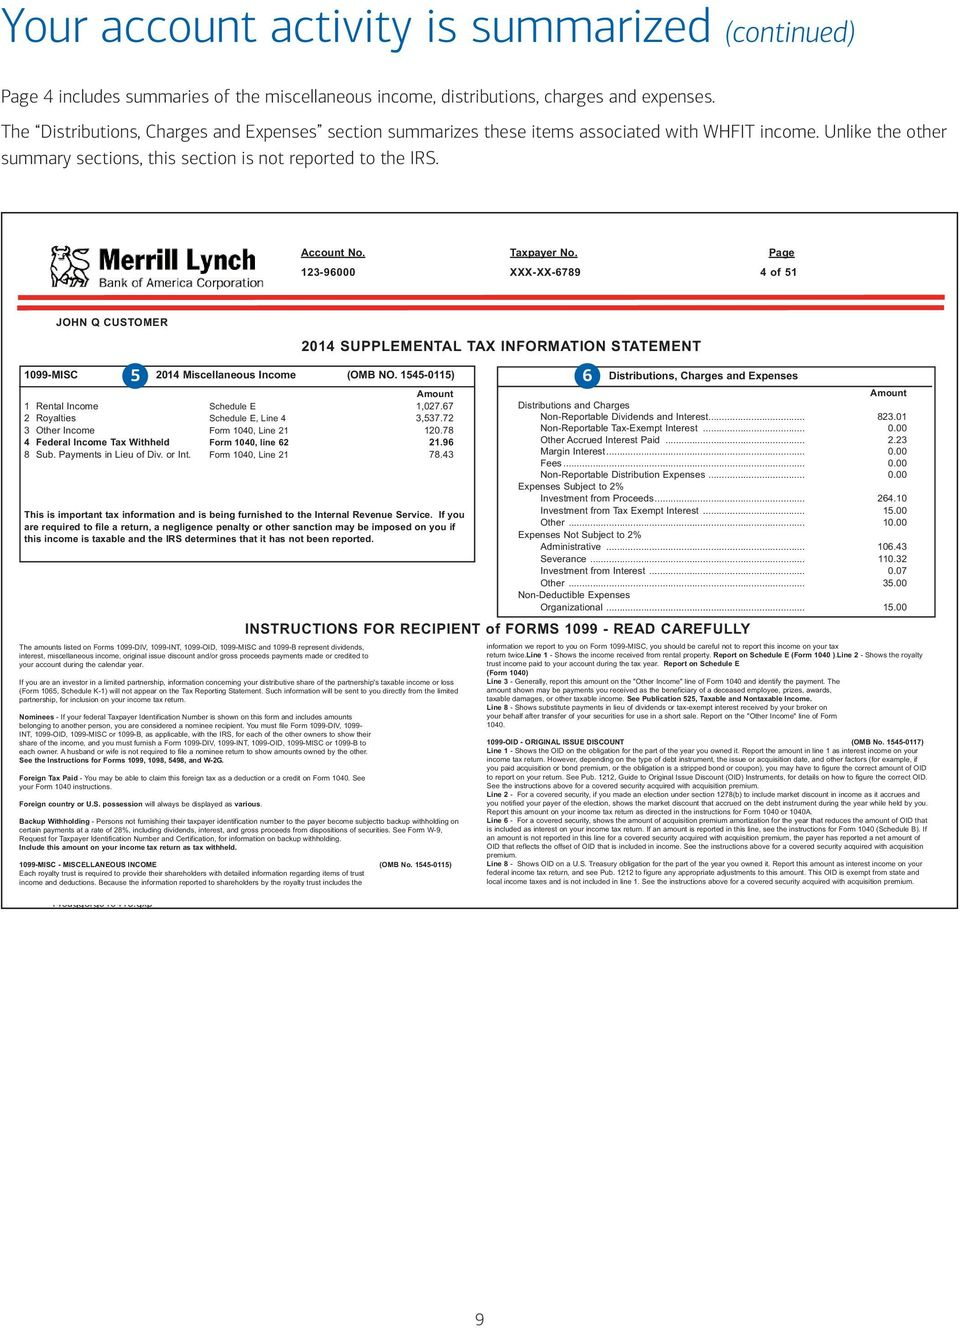 Get The Most From Your Merrill Lynch Supplemental Tax Information